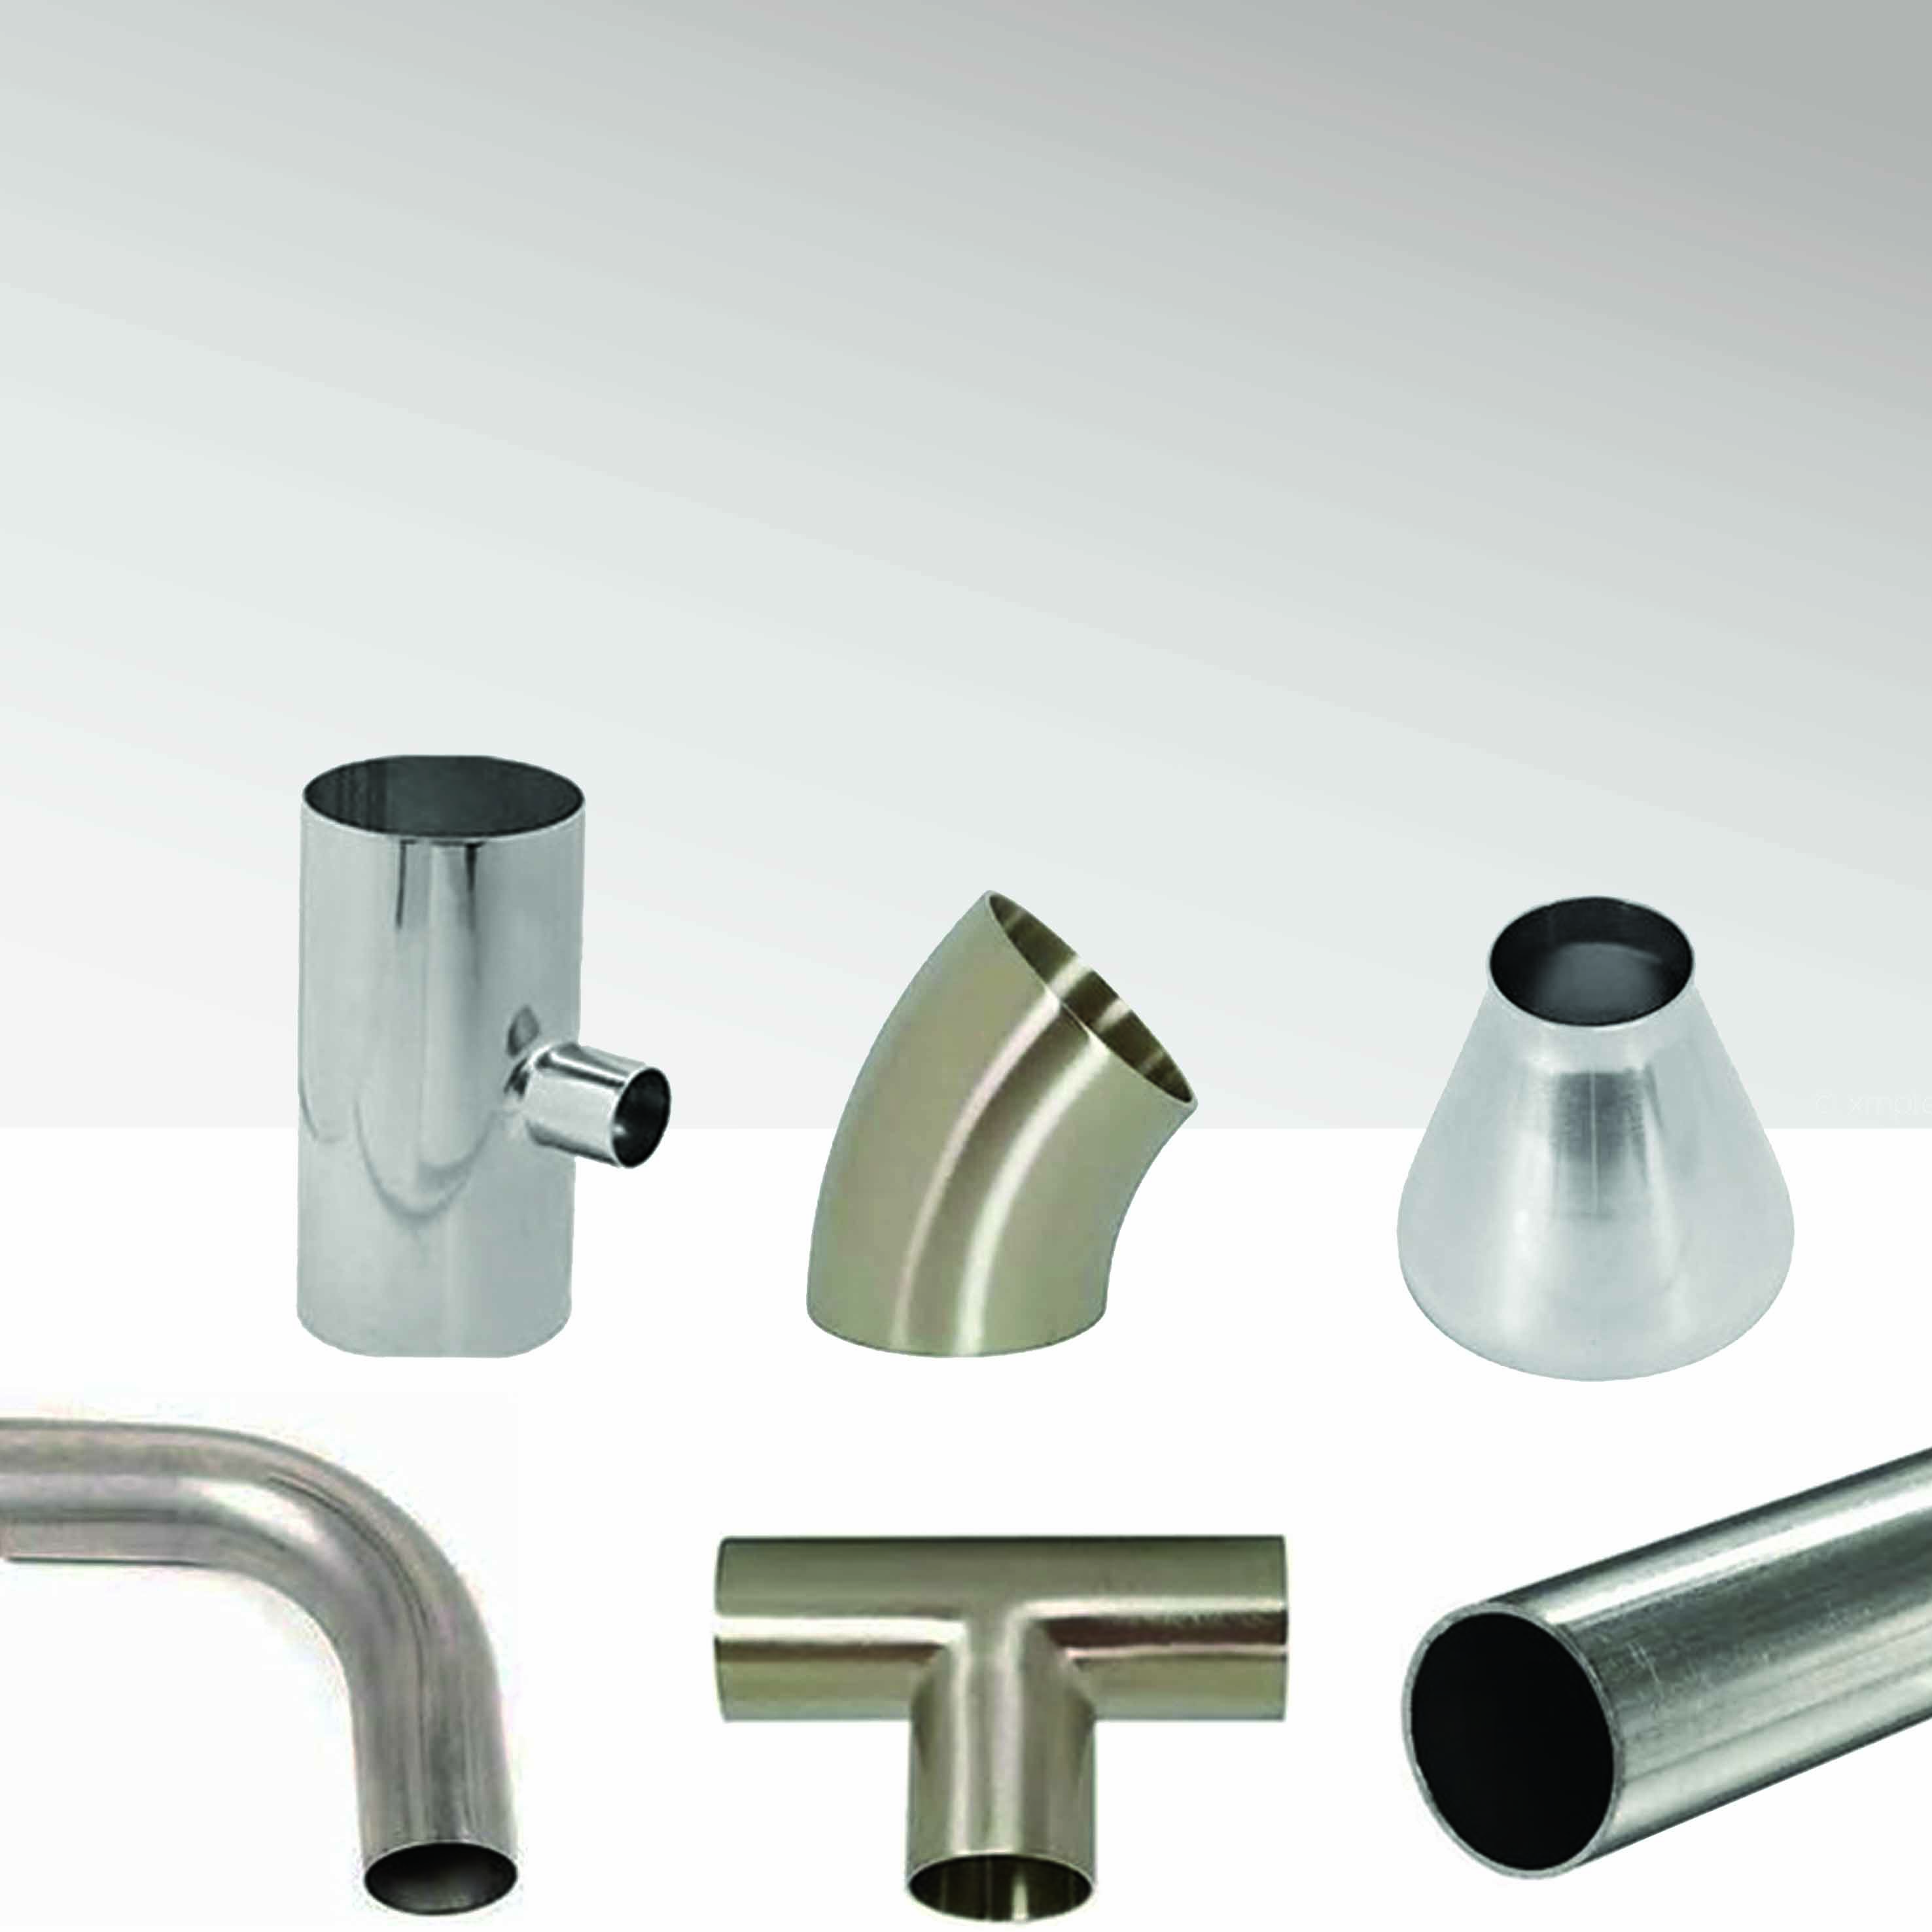 Stainless - Tube Sch 5